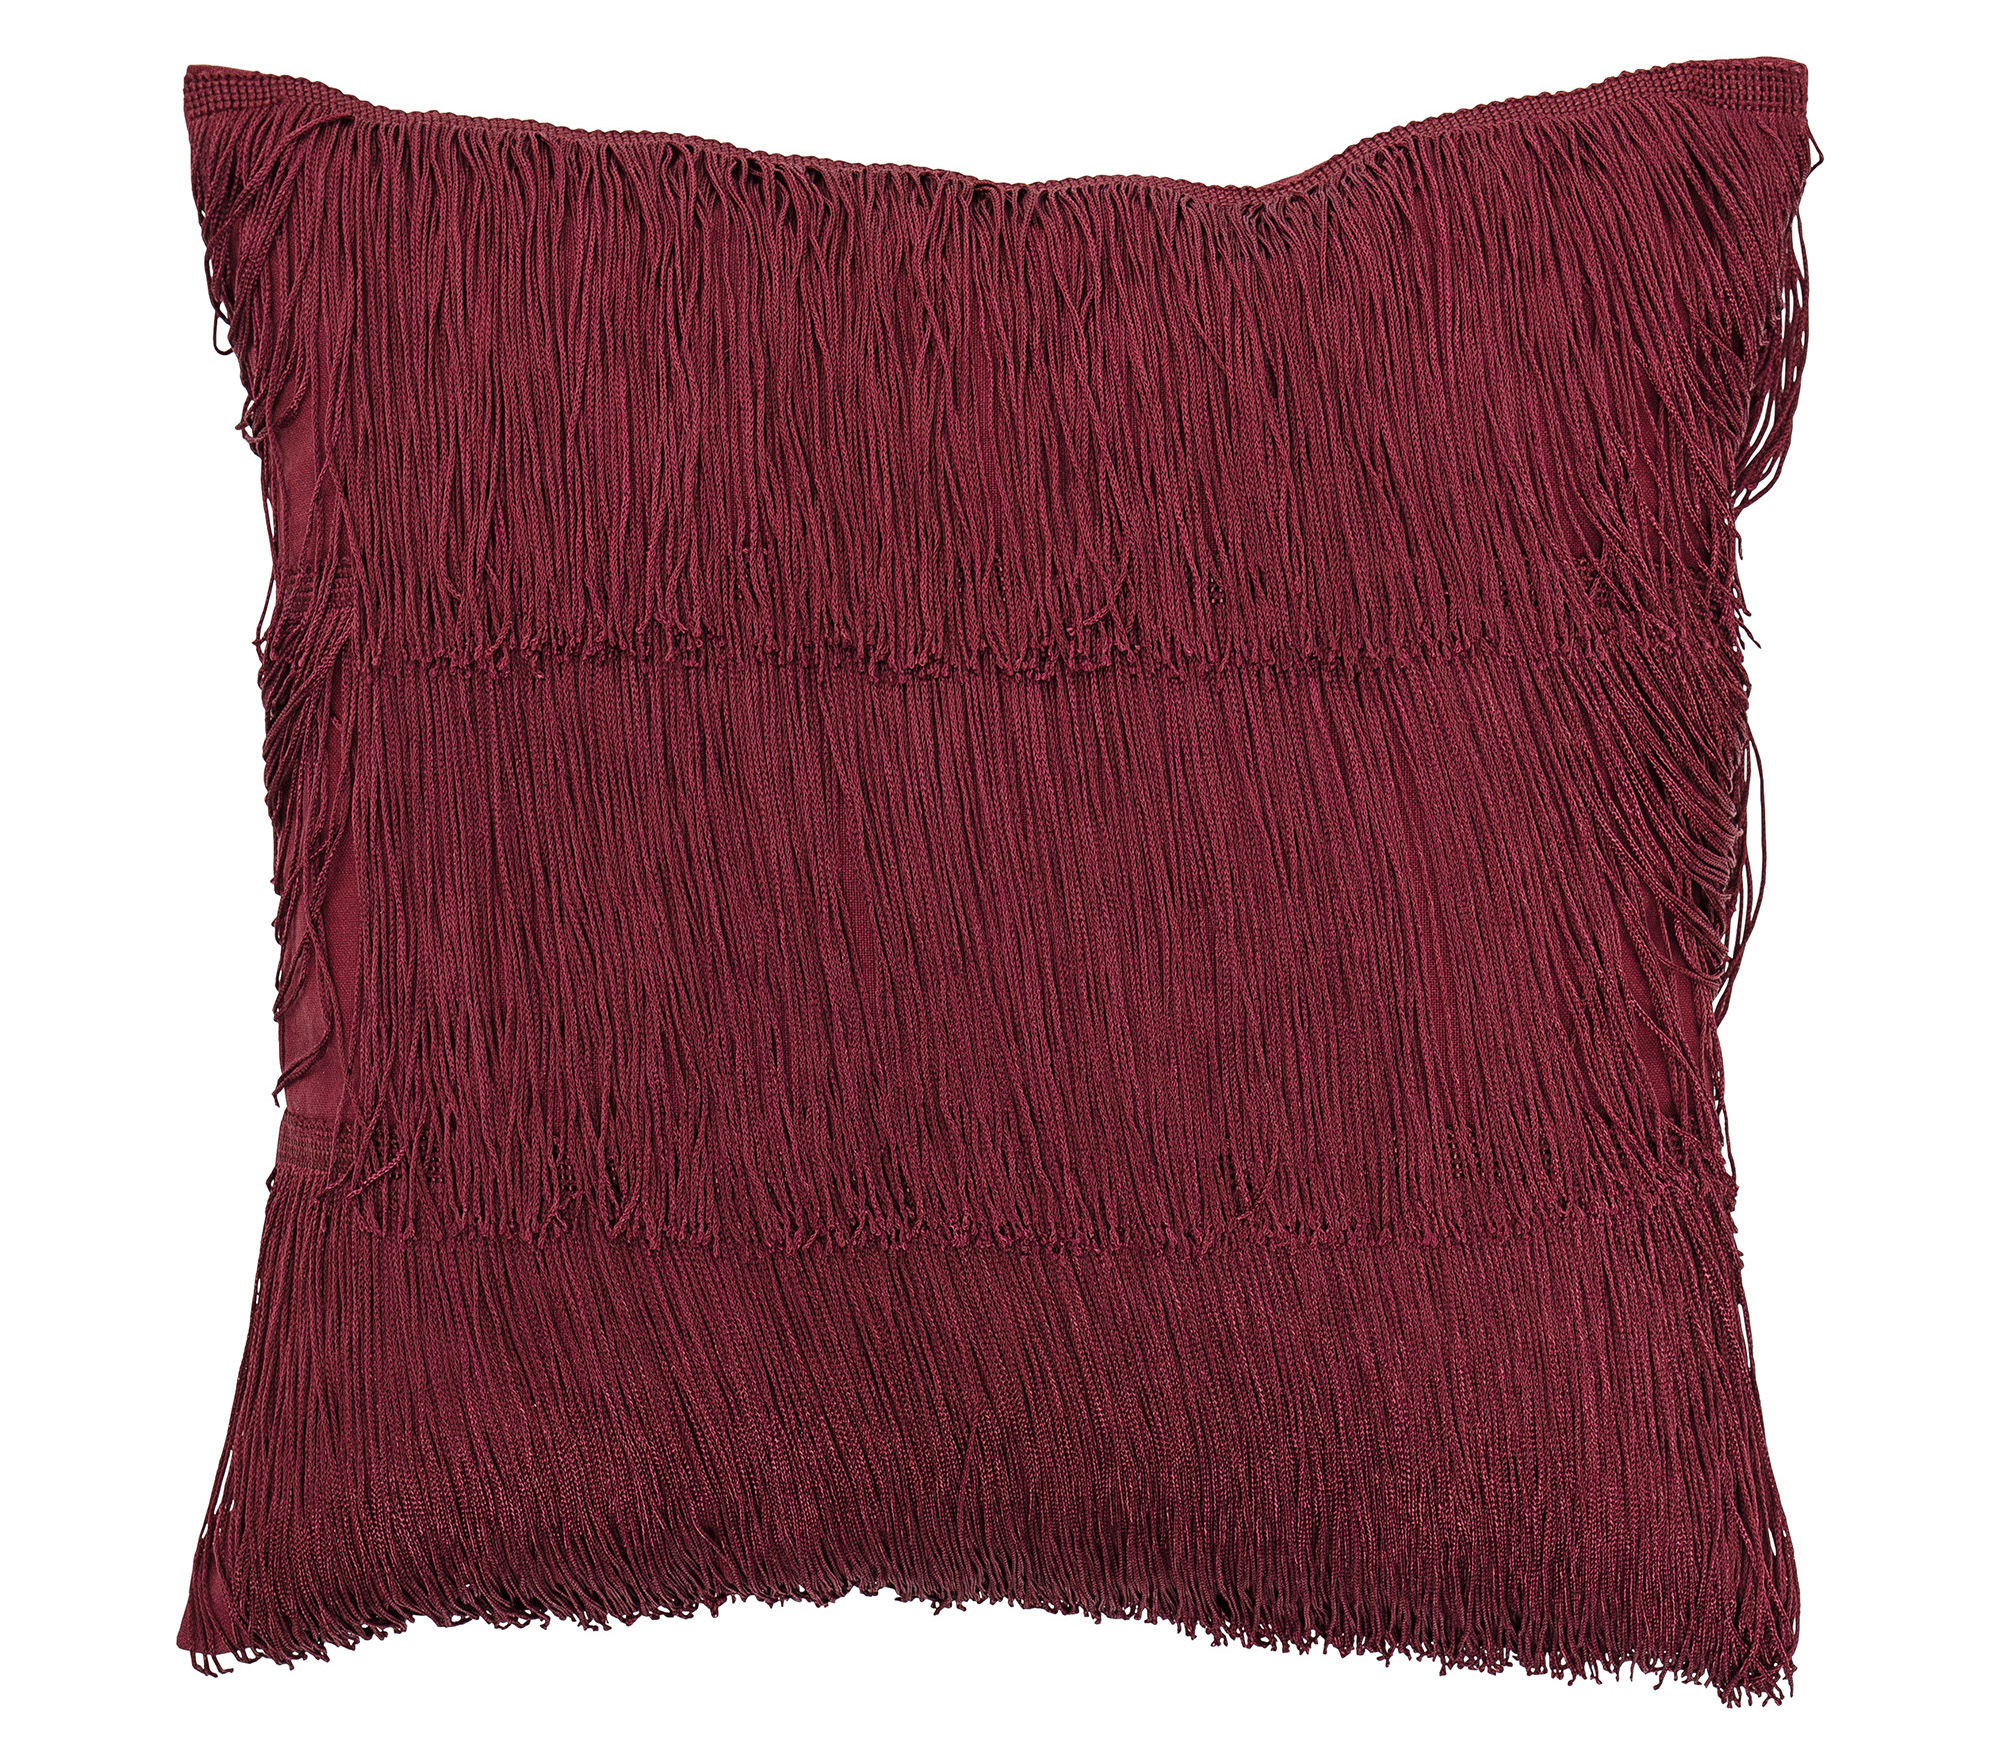 Decoration - Cushions & Poufs - Cushion - / 40 x 40 cm - Fringes by Bloomingville - Red - Cotton